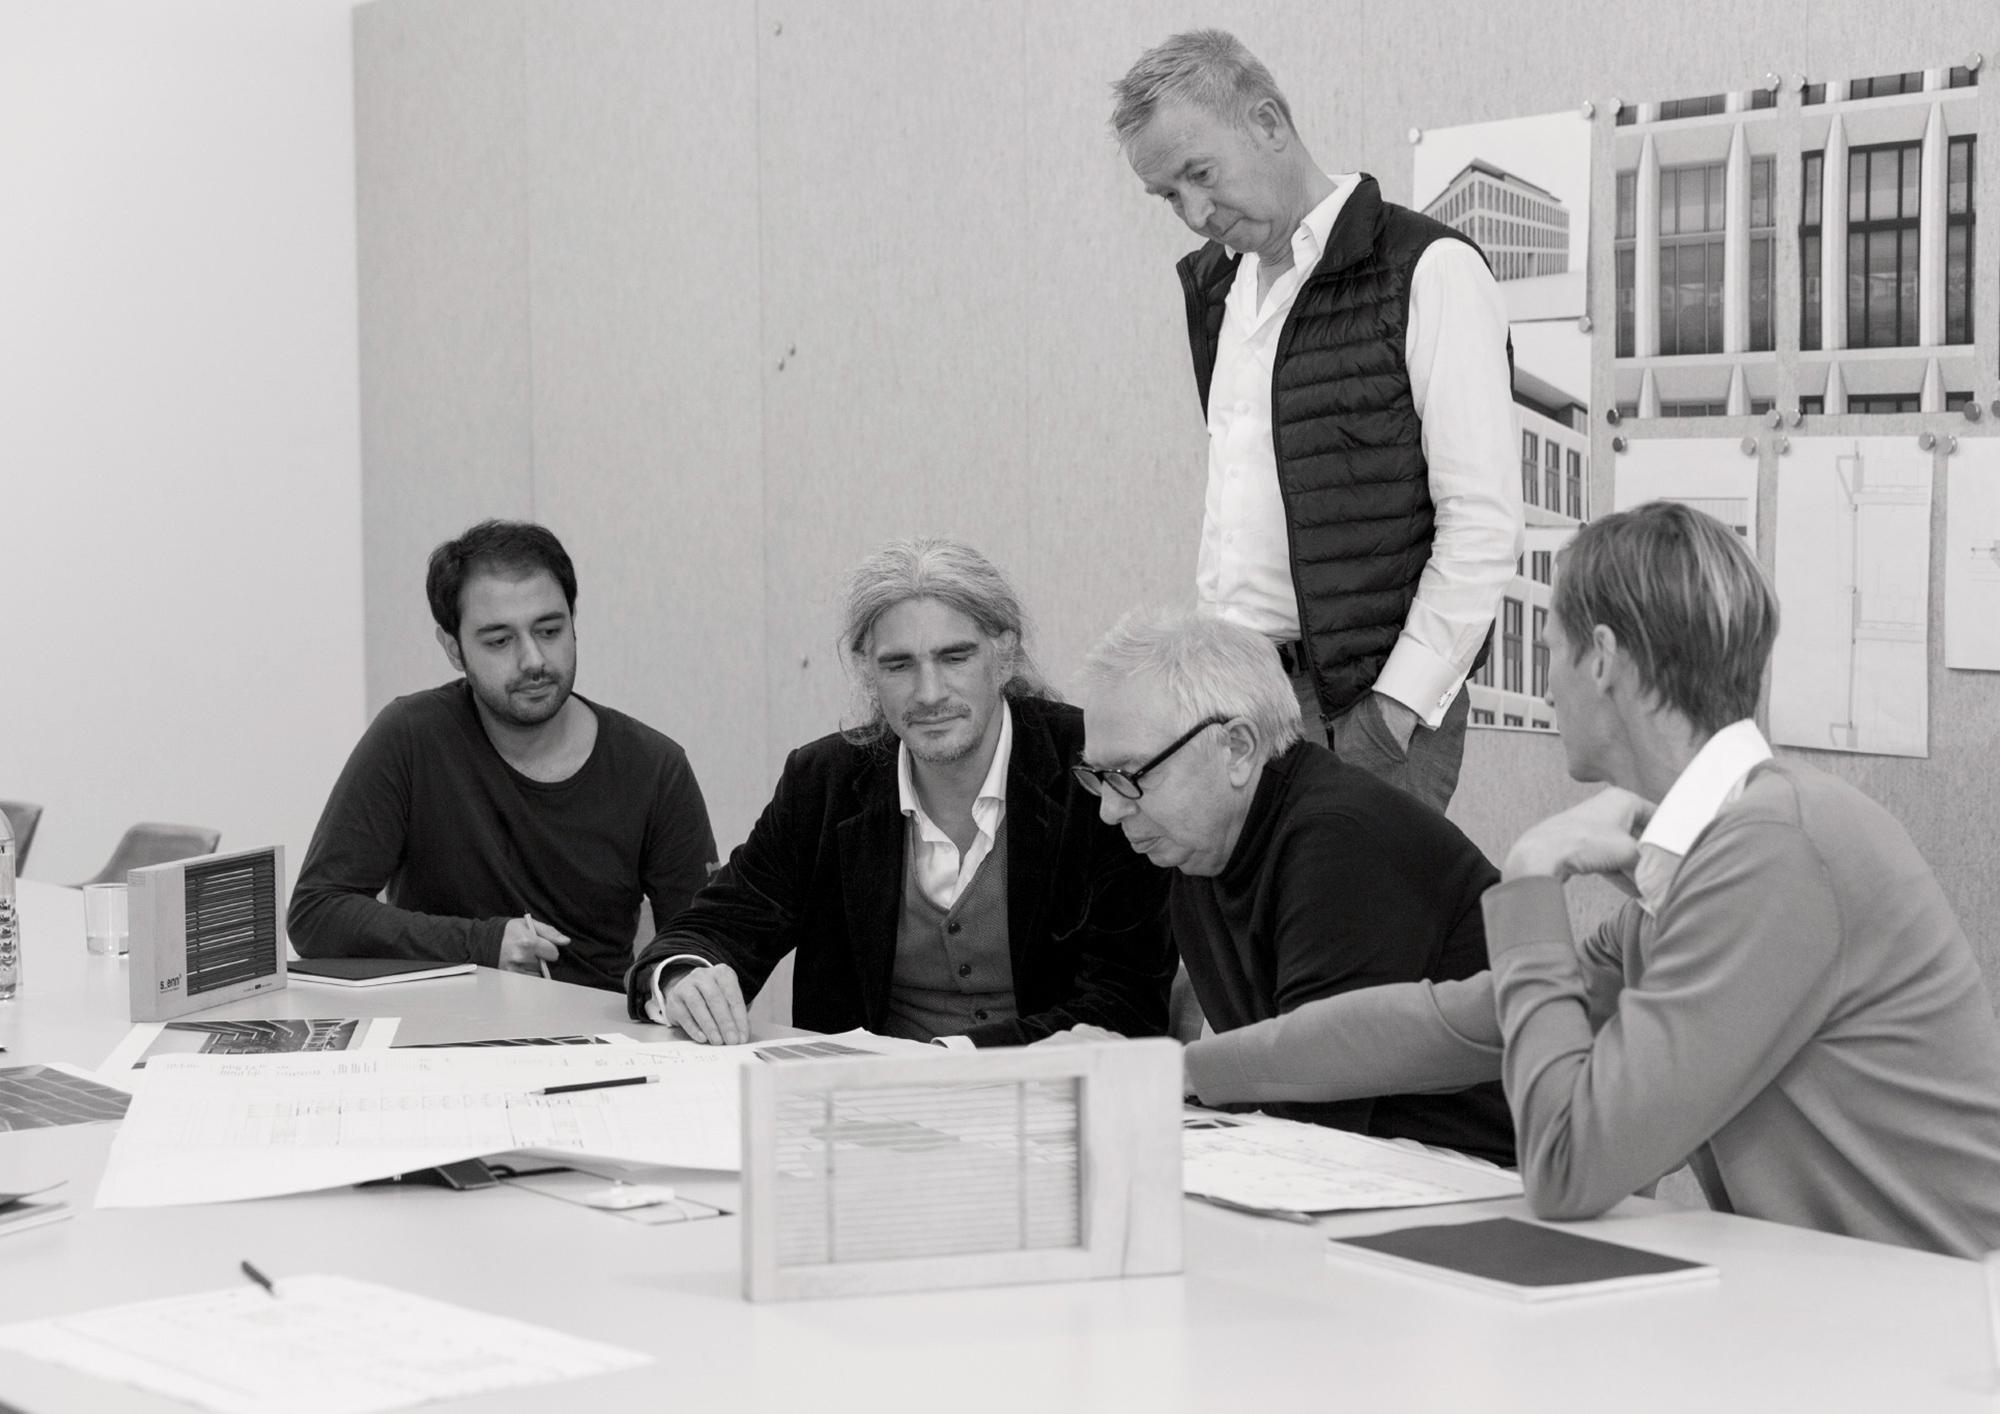 David Chipperfield and the KARL team working on the facade